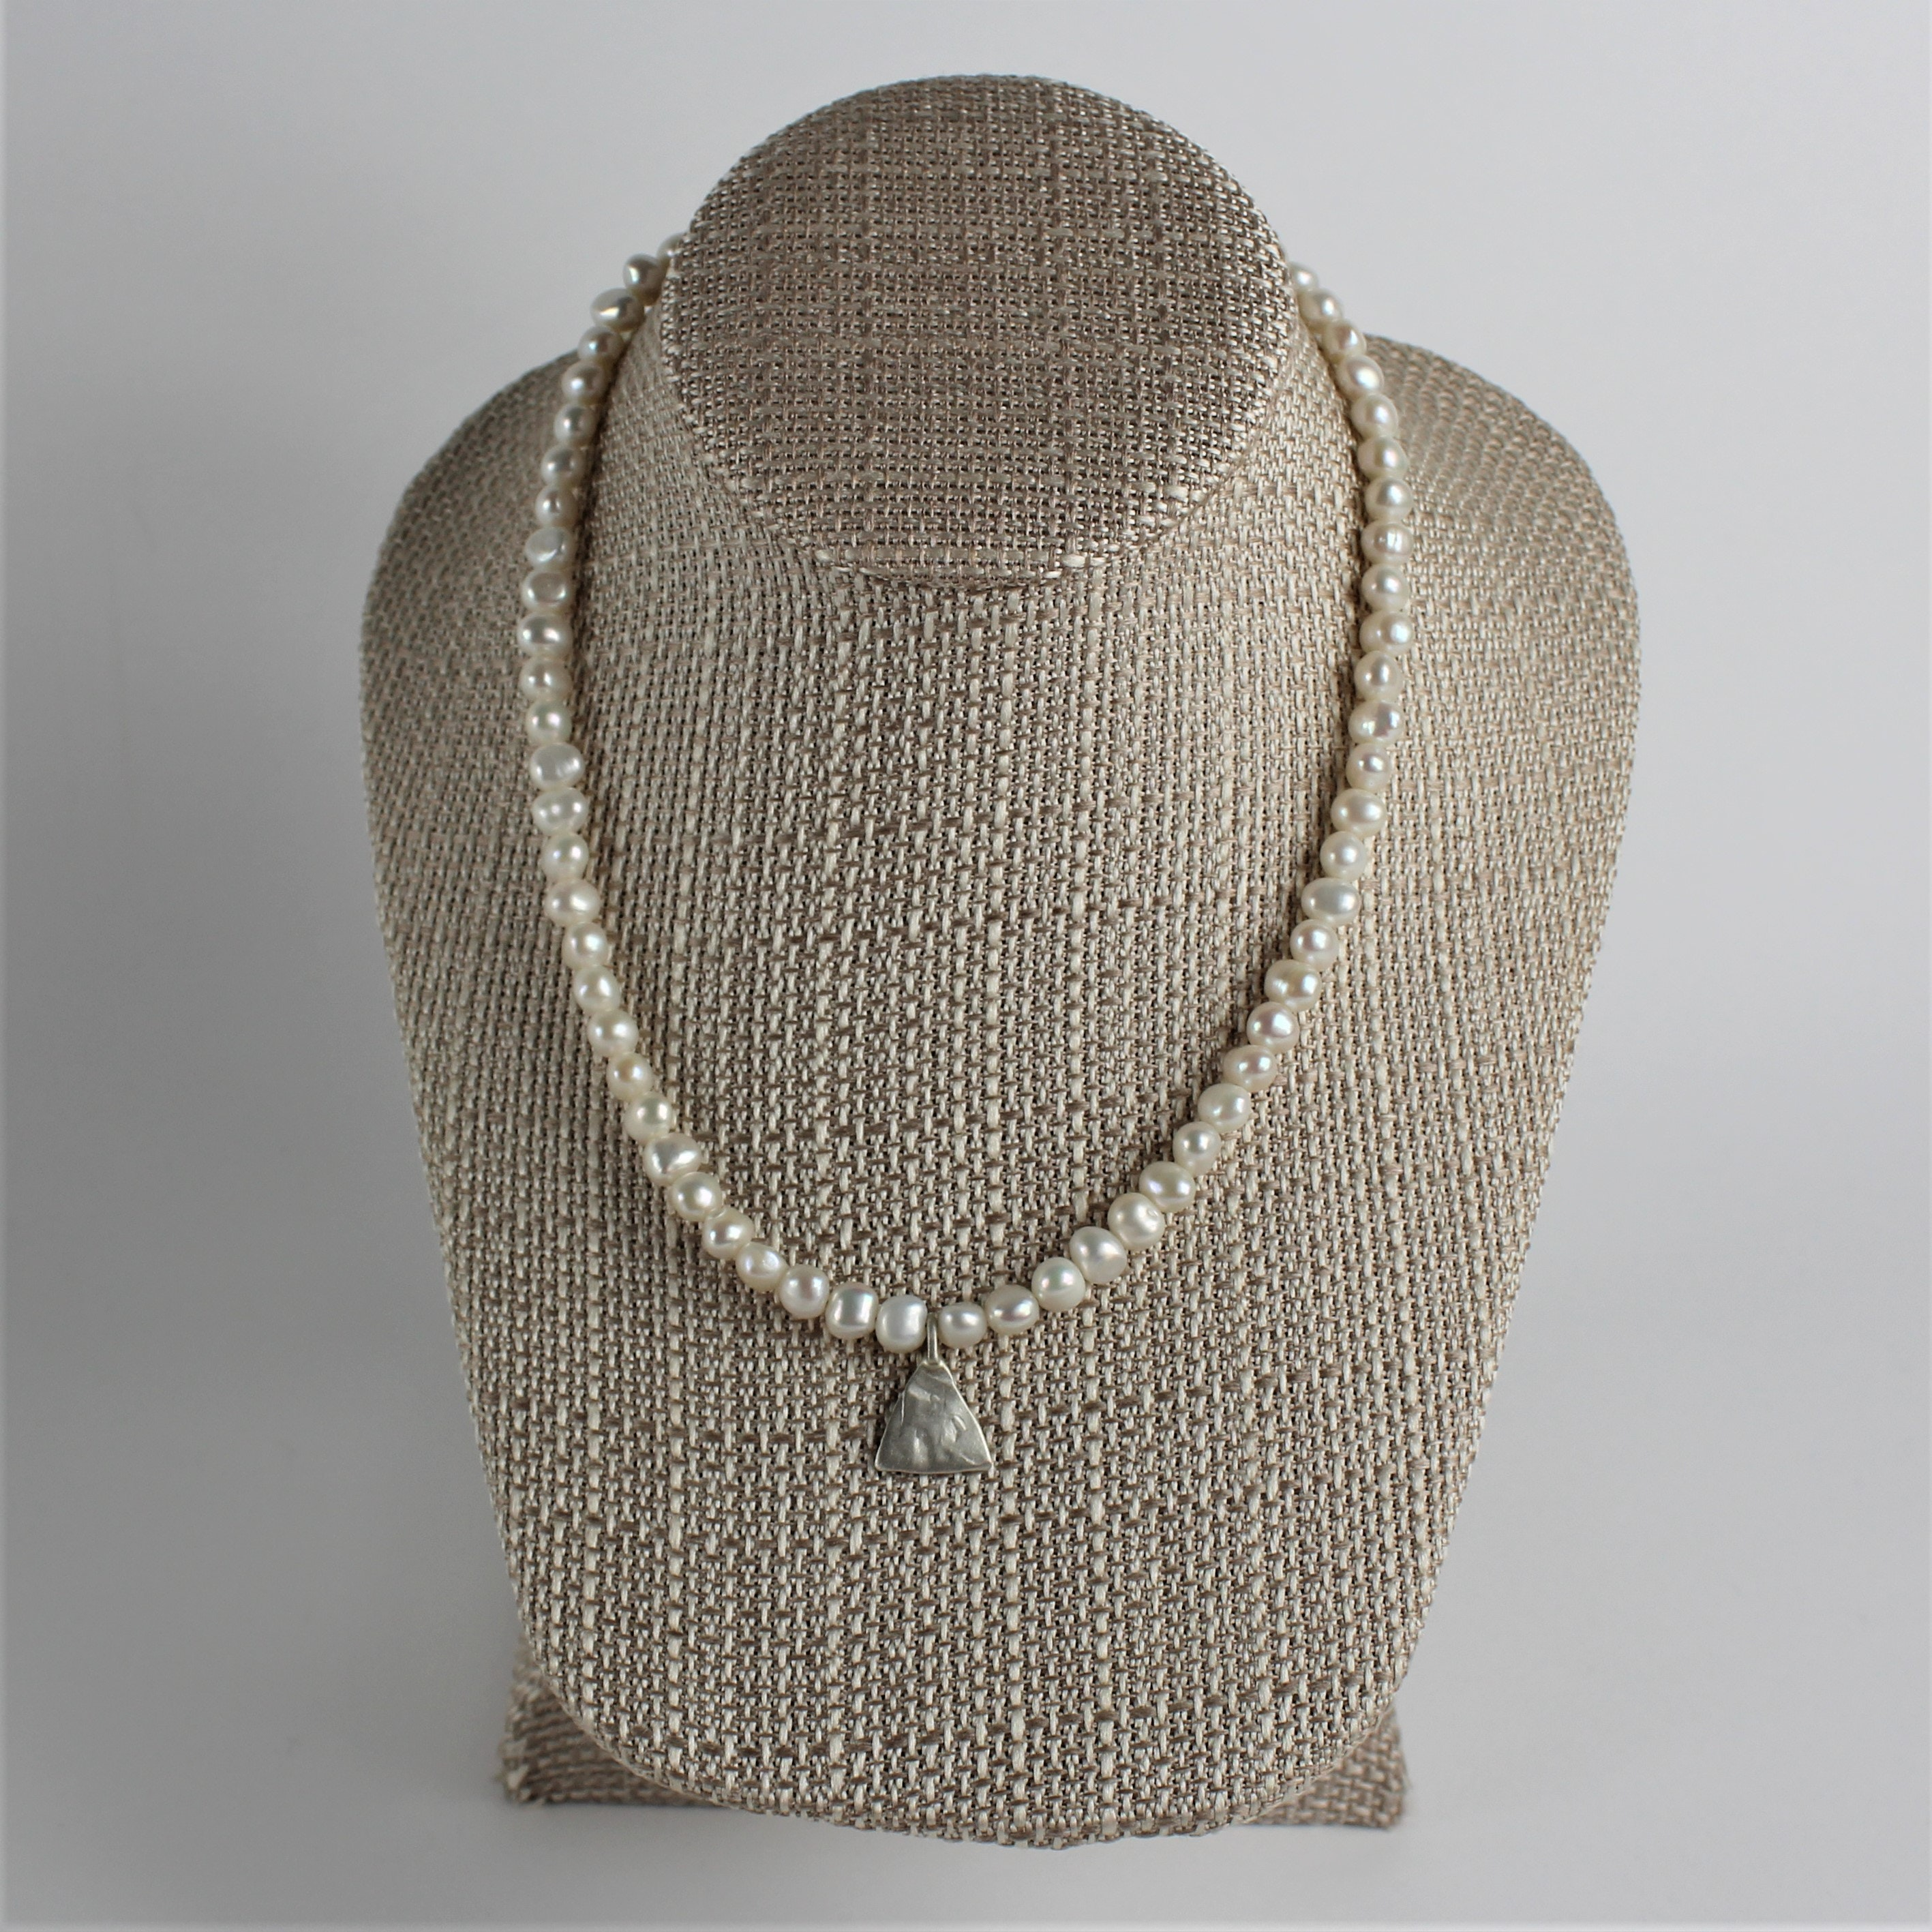 Designer J. Chee Sterling Silver and Pearl Necklace